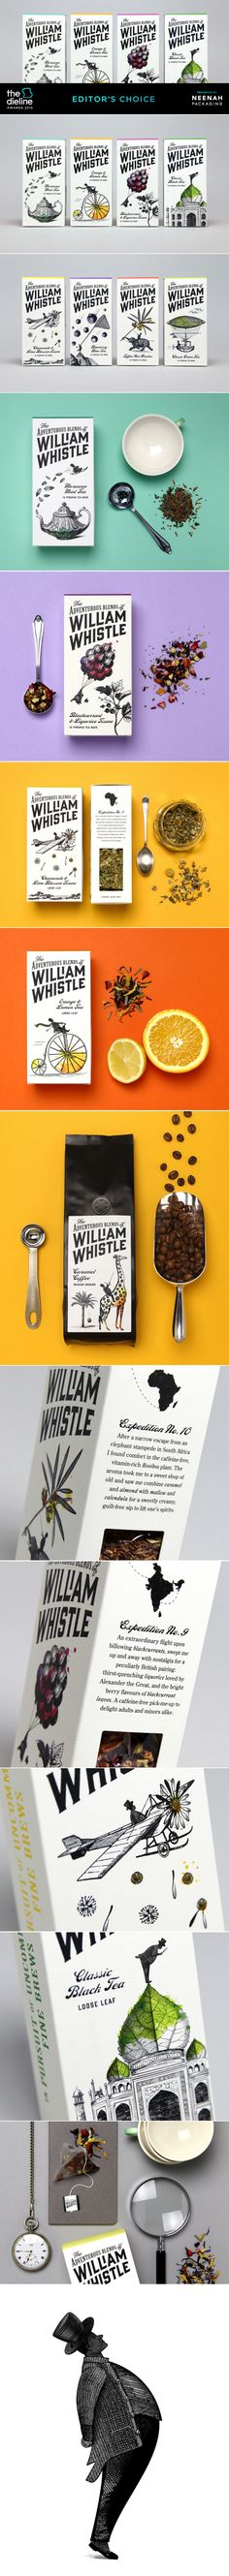 The Dieline Awards 2015: Editor's Choice - The Adventurous Blends of William Whistle — The Dieline | Packaging & Branding Design & Innovation News